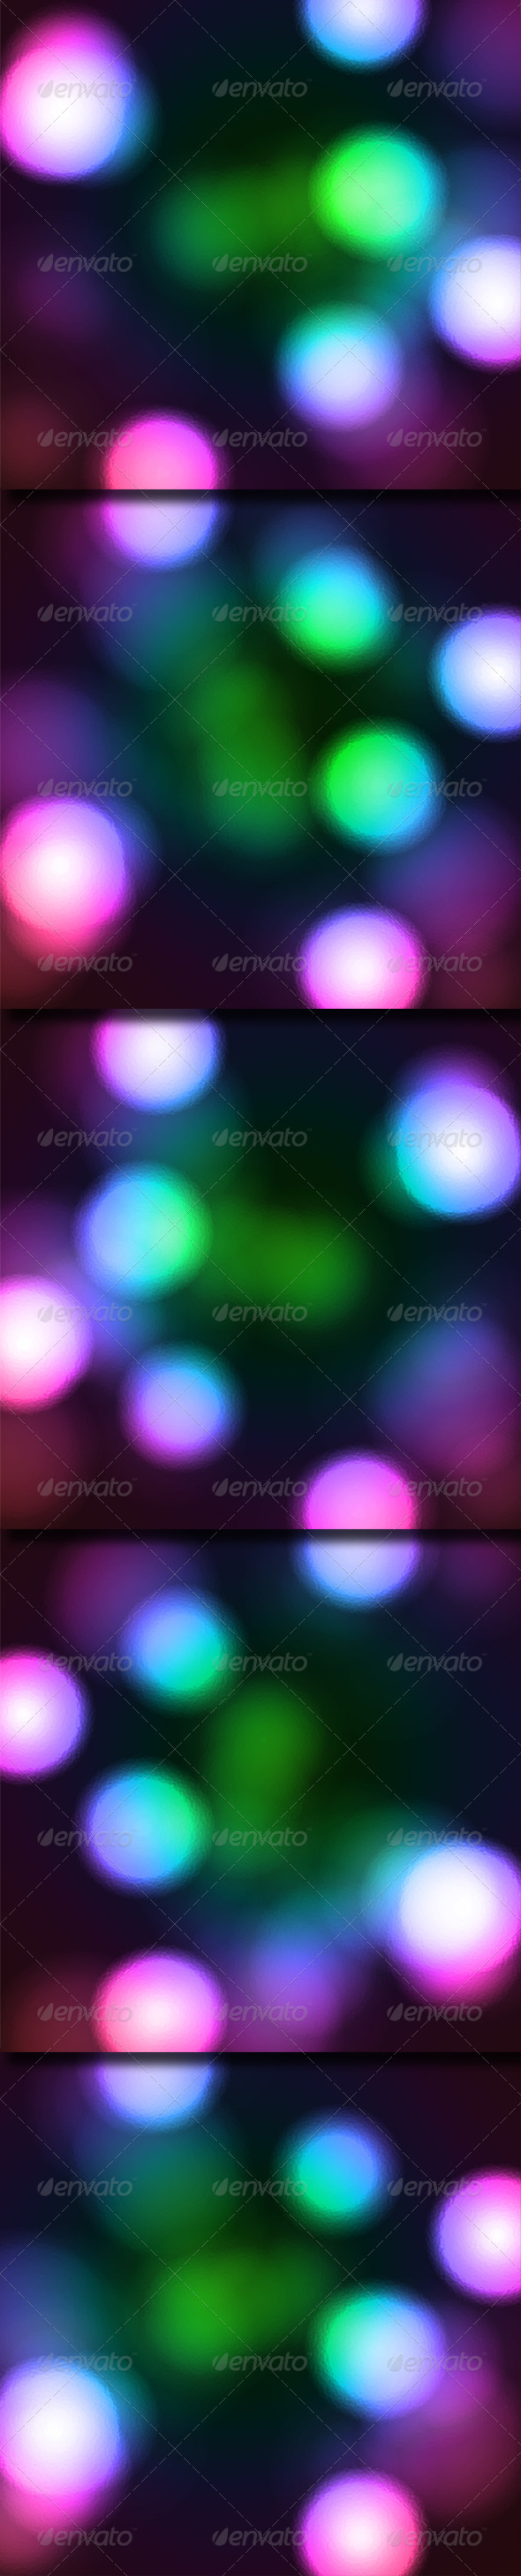 Glowing Colored Spots - Abstract Backgrounds